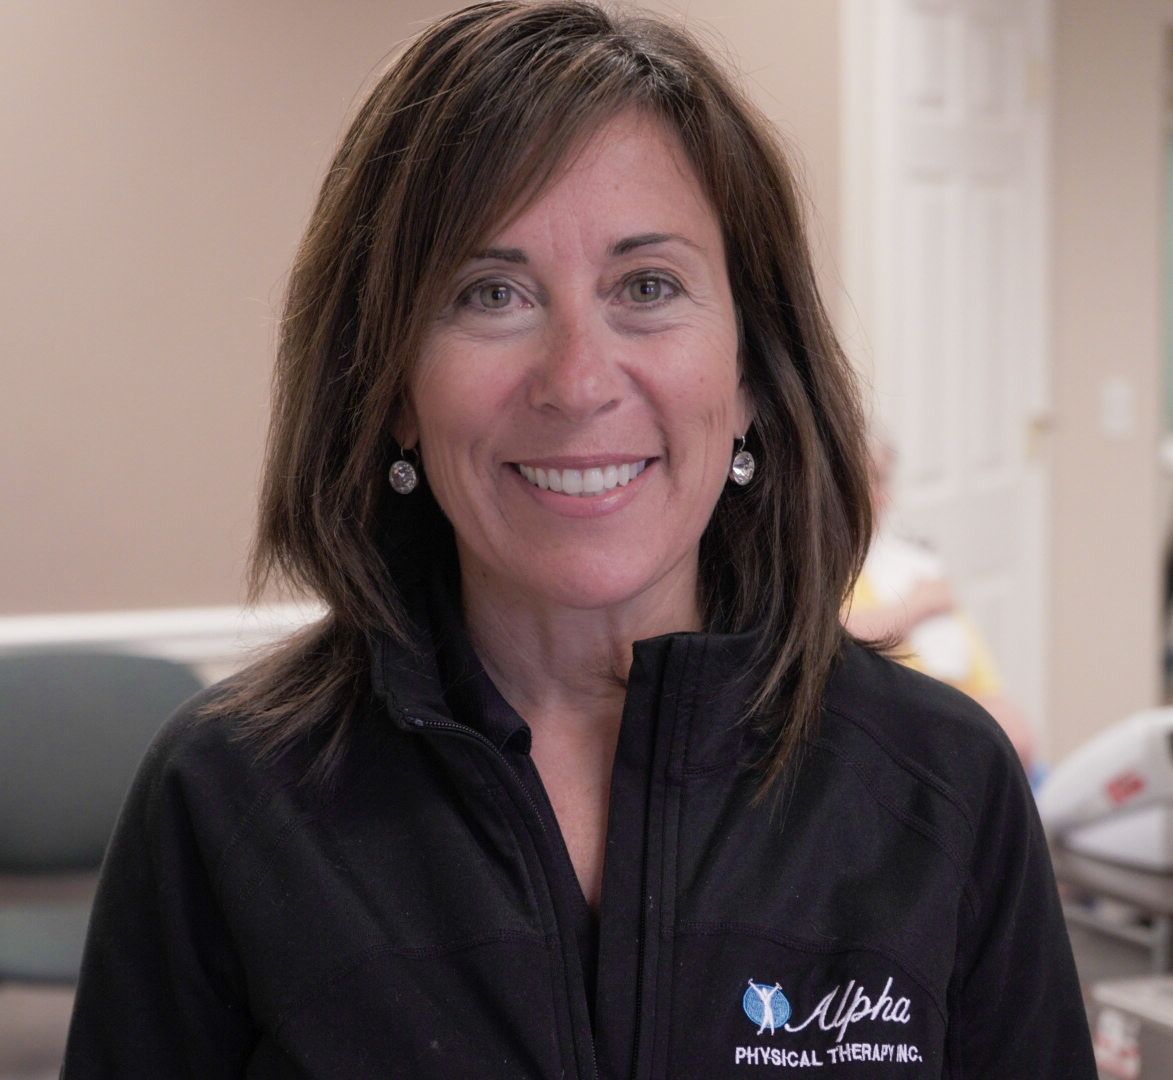 Susan Soscia P.T., ATC Director of Rehabilitation - After graduating from Quinnipiac College in Hamden, CT in 1990, Susan went on to pursue her Fellowship in Advanced Sports Medicine from the American Sports Medicine Institute in Birmingham, AL under Dr. Andrews. Susan opened the doors to Alpha Physical Therapy in June of 2000 and brought with her extensive experience in advanced sports medicine and physical therapy. She enjoys bringing prevention and treatment awareness to the youth, and this enthusiasm has served as the springboard to her being the athletic trainer for the city of Cranston servicing Cranston West and Cranston East High Schools sports teams.